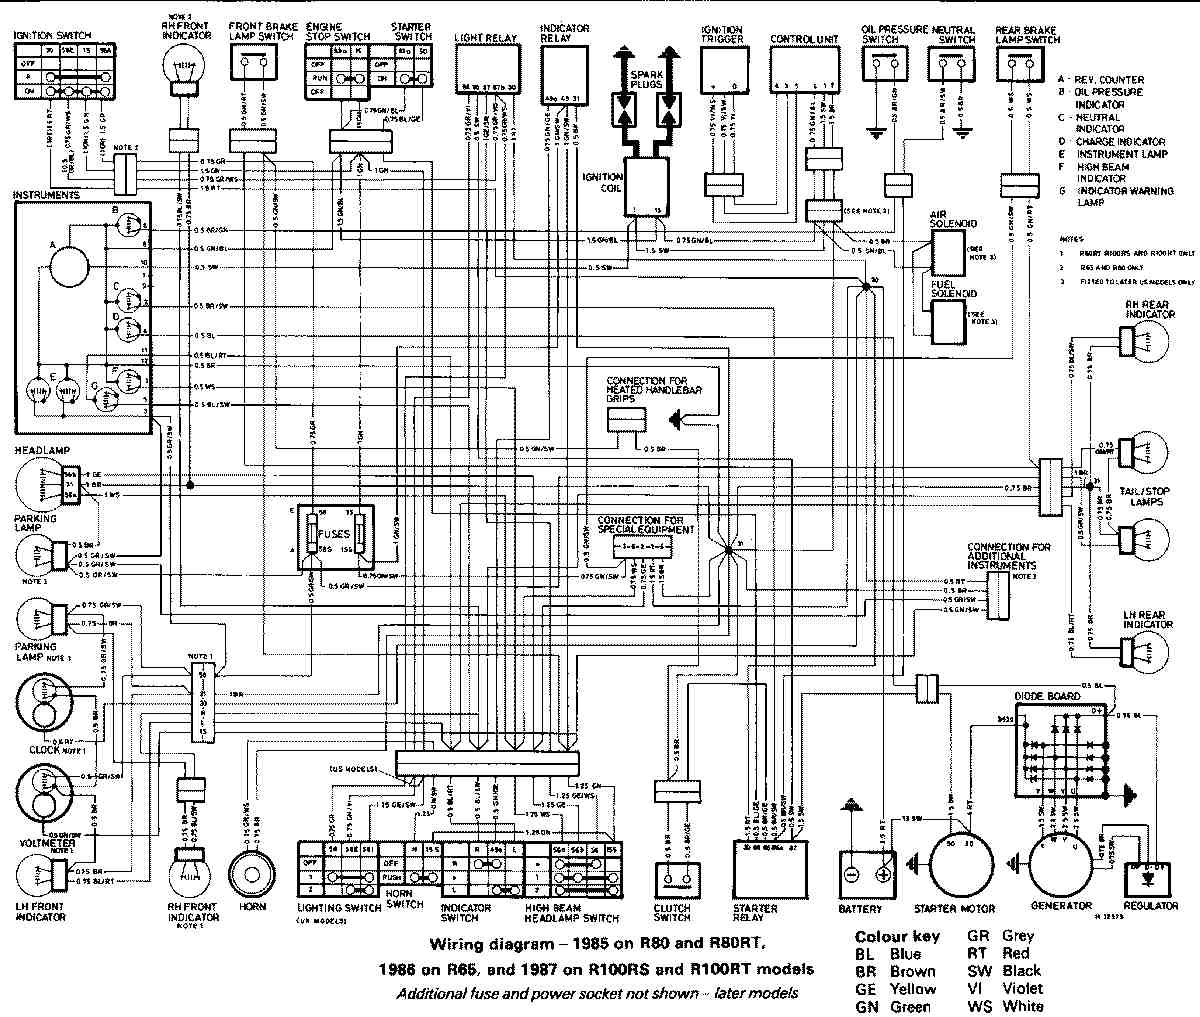 1992 Bmw 535i Fuse Box Diagram Electrical Wiring Diagrams 525i Locations 1991 Layout 100 Free U2022 X3